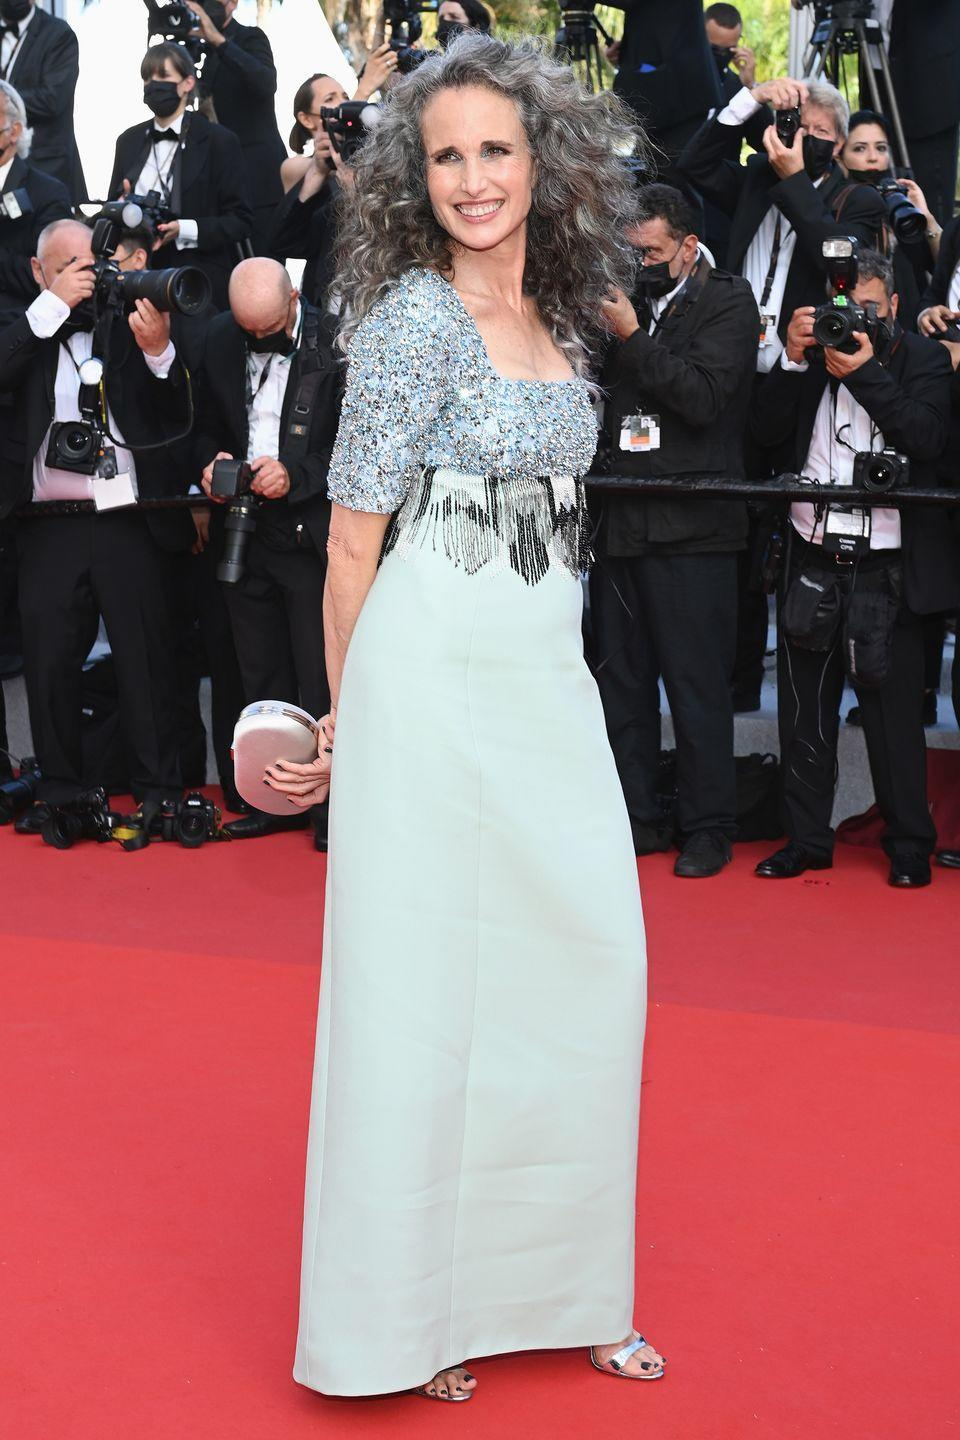 <p>The actress and L'Oreal muse wore a classic silver-grey column dress with an embellished bodice. </p>